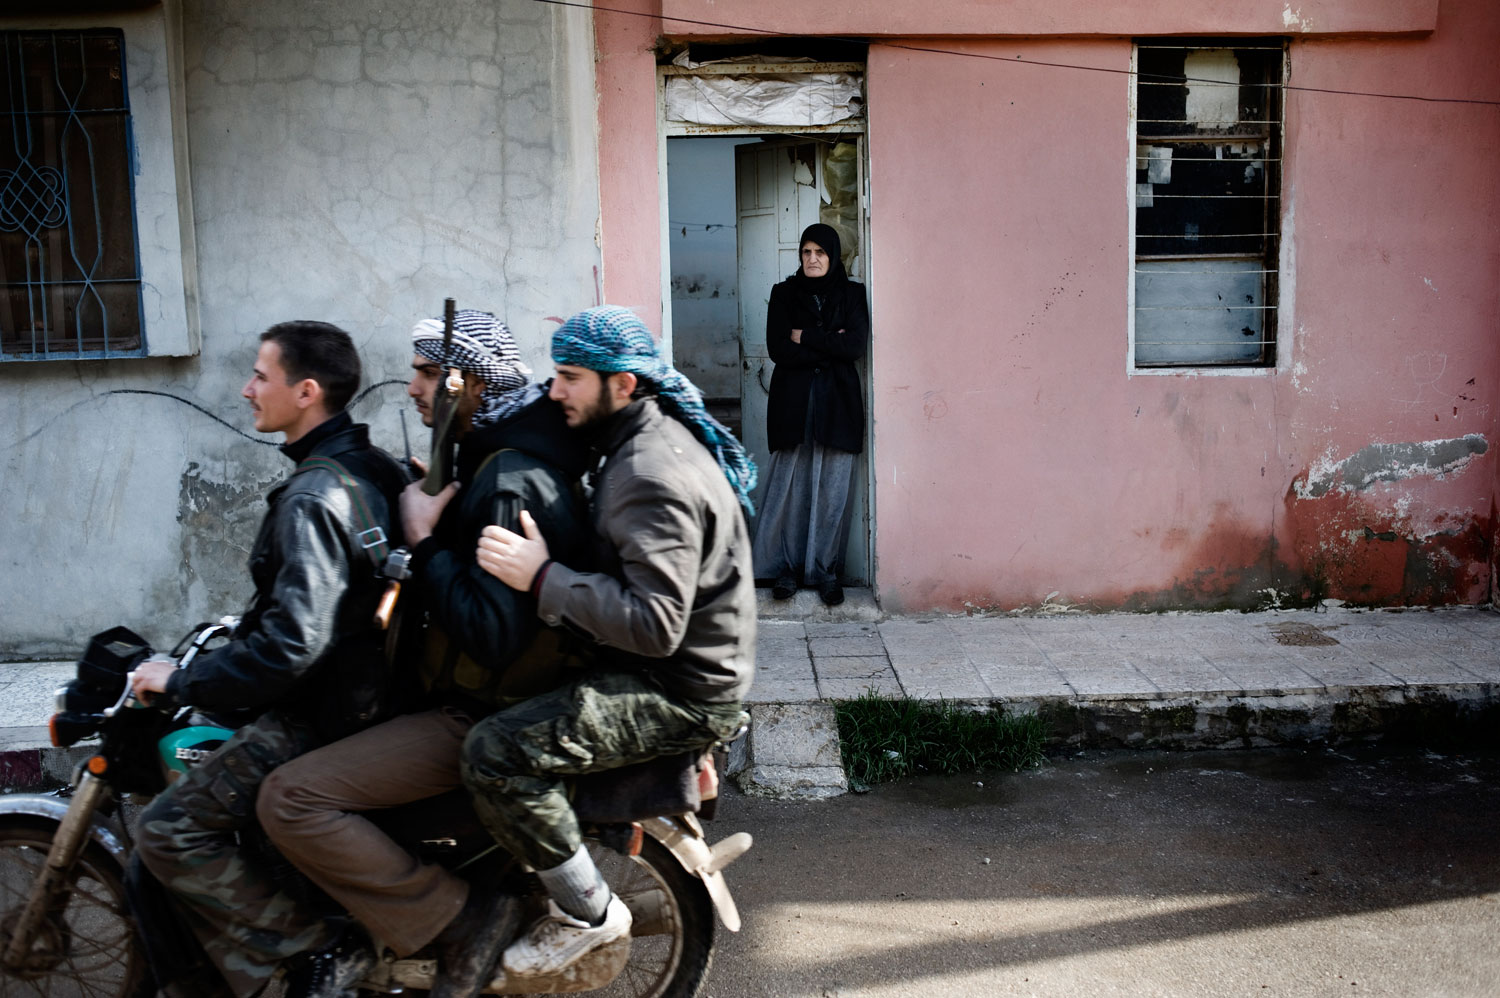 Members of the Free Syrian Army move their position in Al Qsair. Jan. 28, 2012